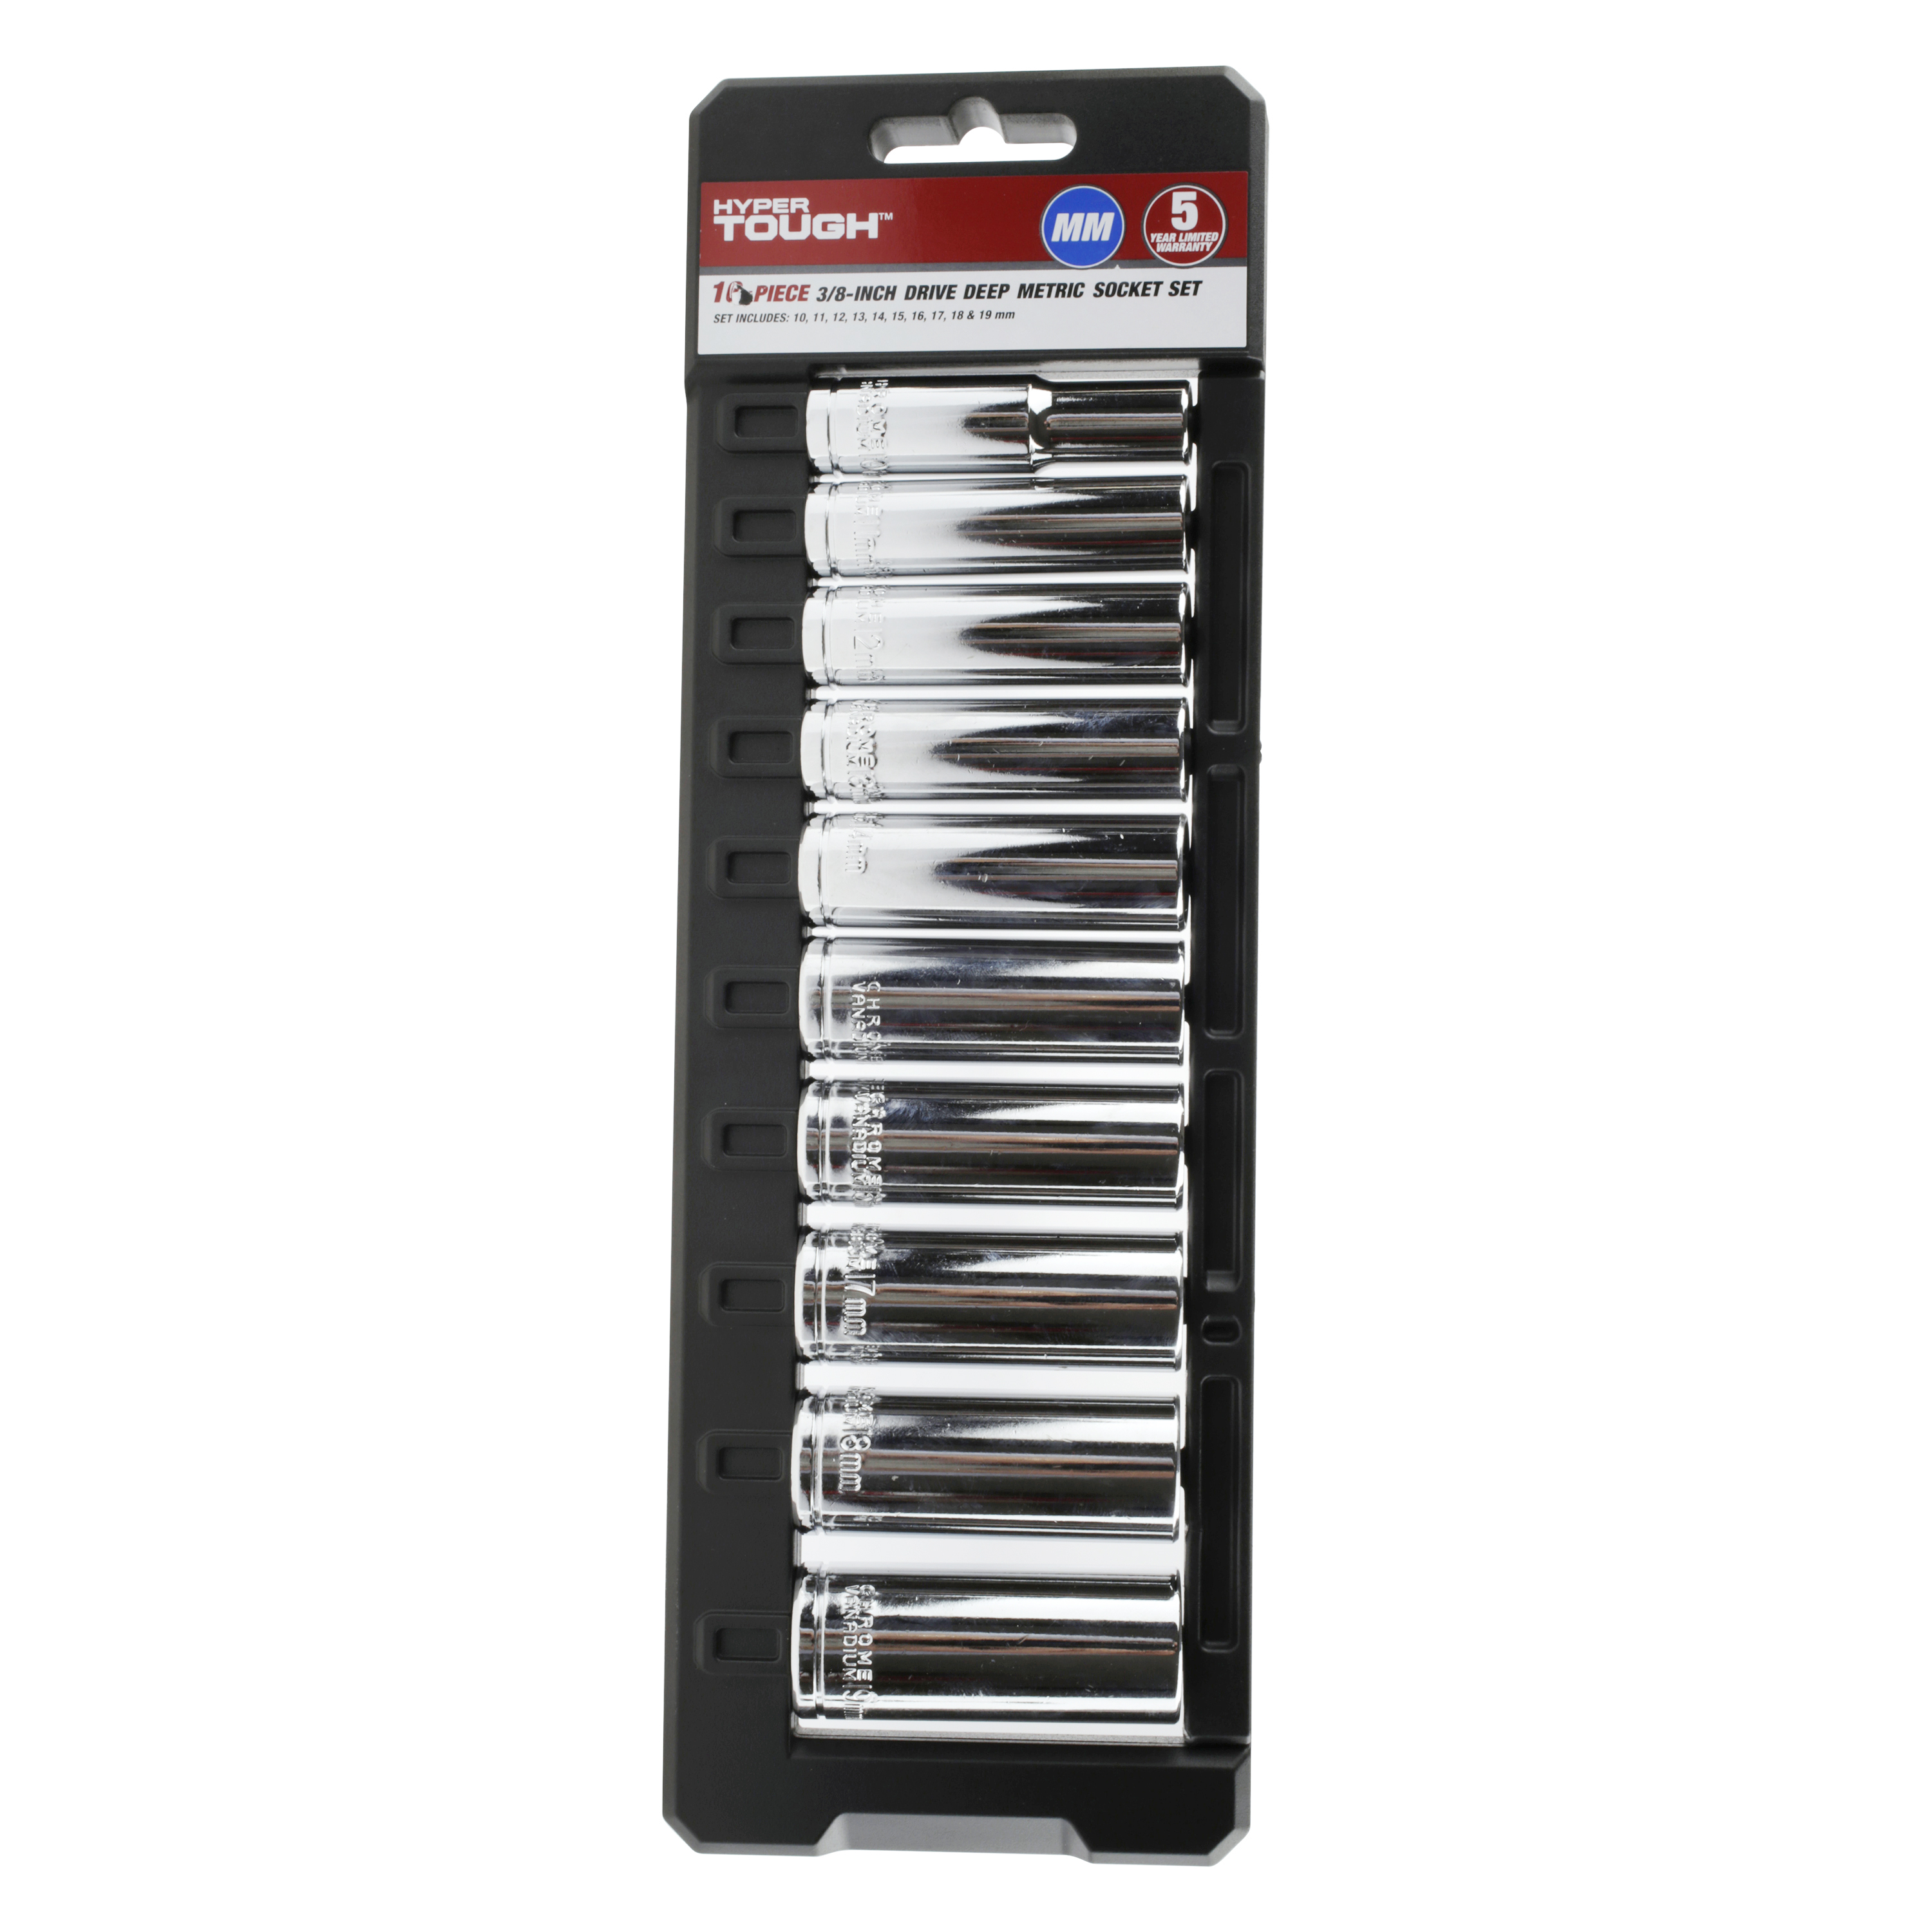 Hyper Tough 10 Piece 3 8ths Inch Drive Deep Metric Socket Set